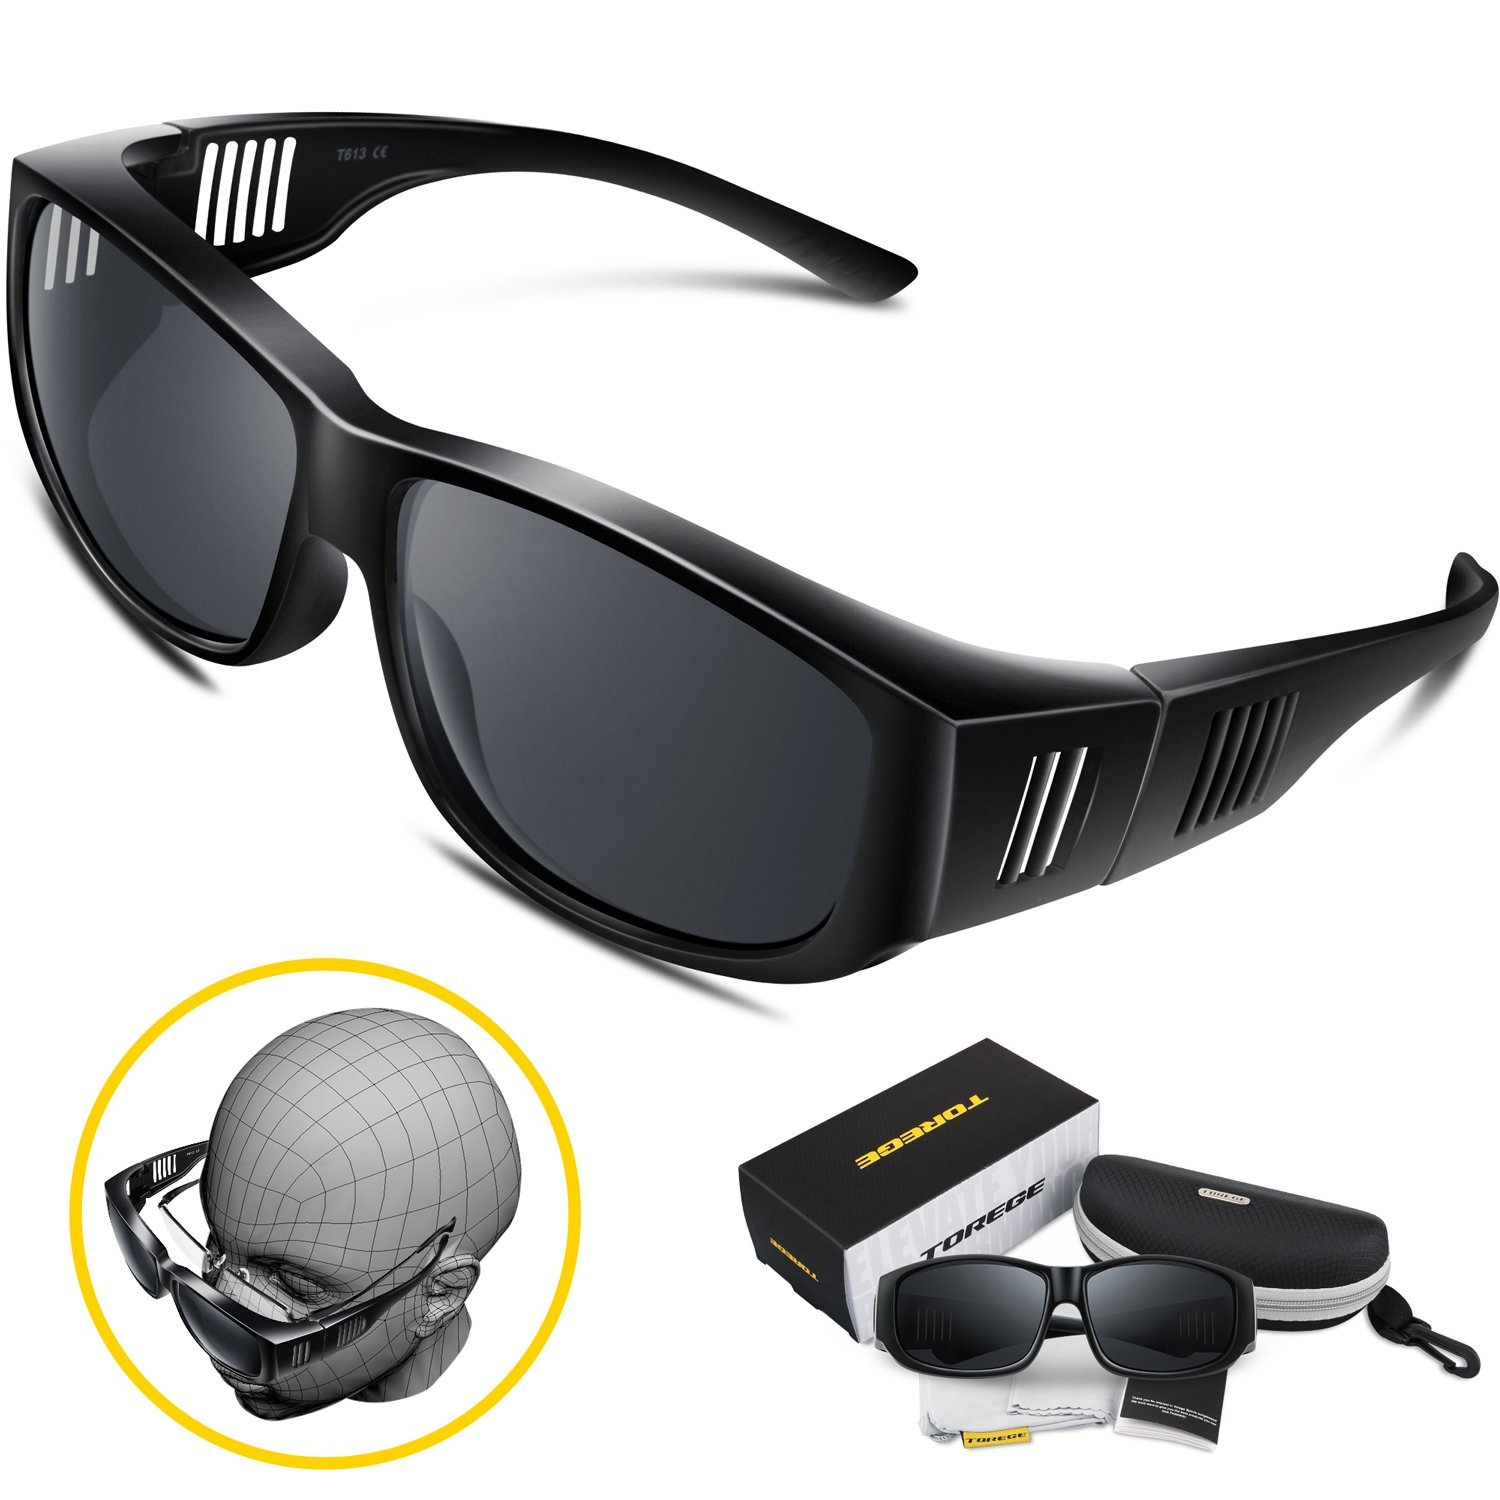 dc34a0f7b45 Get Quotations · Torege Flip Up Fit Over Sunglasses with Side Shields  Polarized Lenses for Driving Fishing Hunting T613